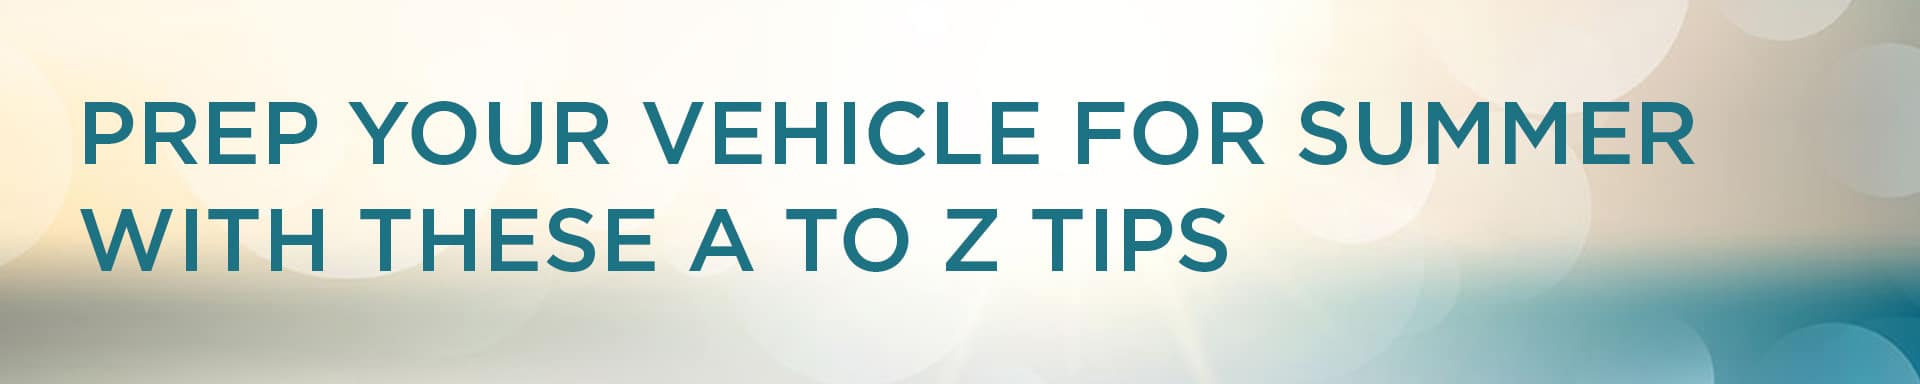 Prep your vehicle for summer with these A to Z tips